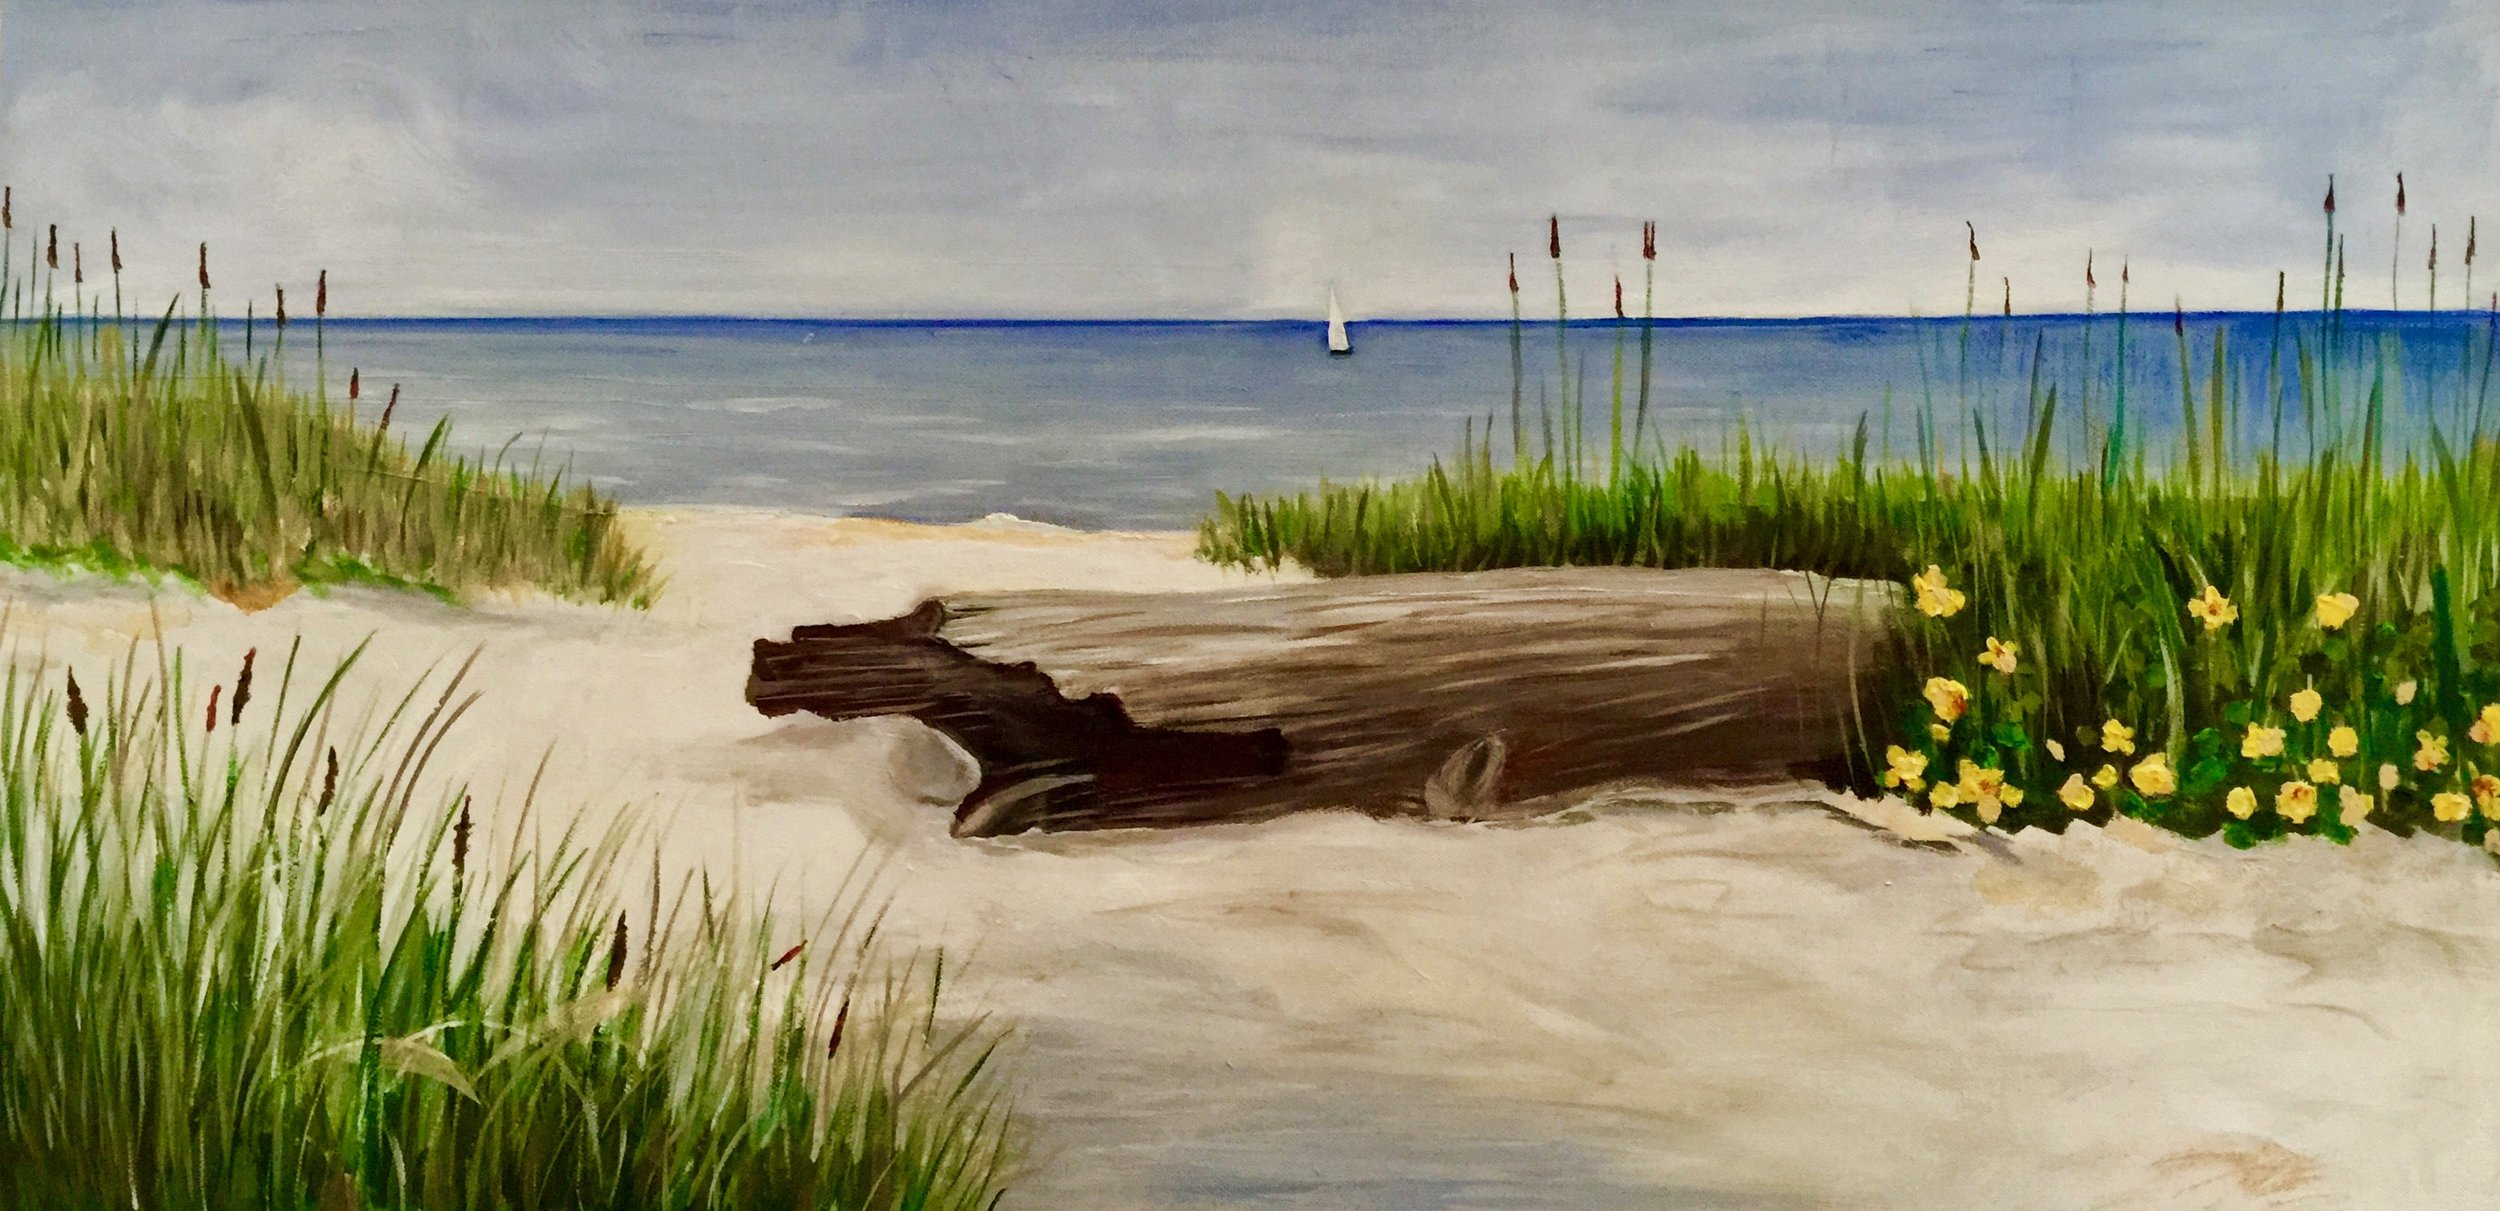 """North Sea Dunes"" (following ""Seaside Scenes"" by Jacqueline Penney) - Oil, 30""x 15"" (2016)"